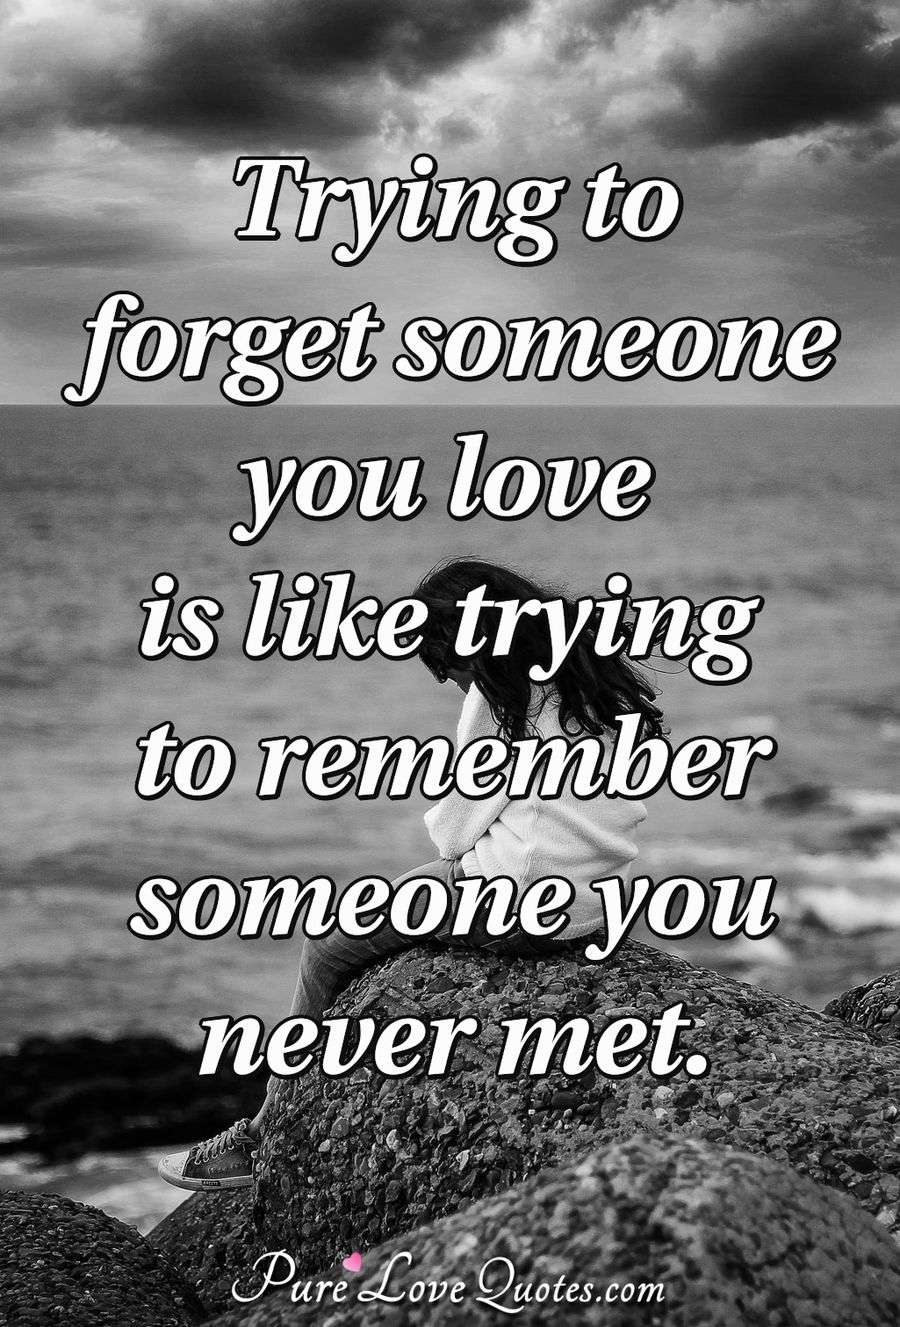 Trying to forget someone you love is like trying to remember someone you never met. - Anonymous